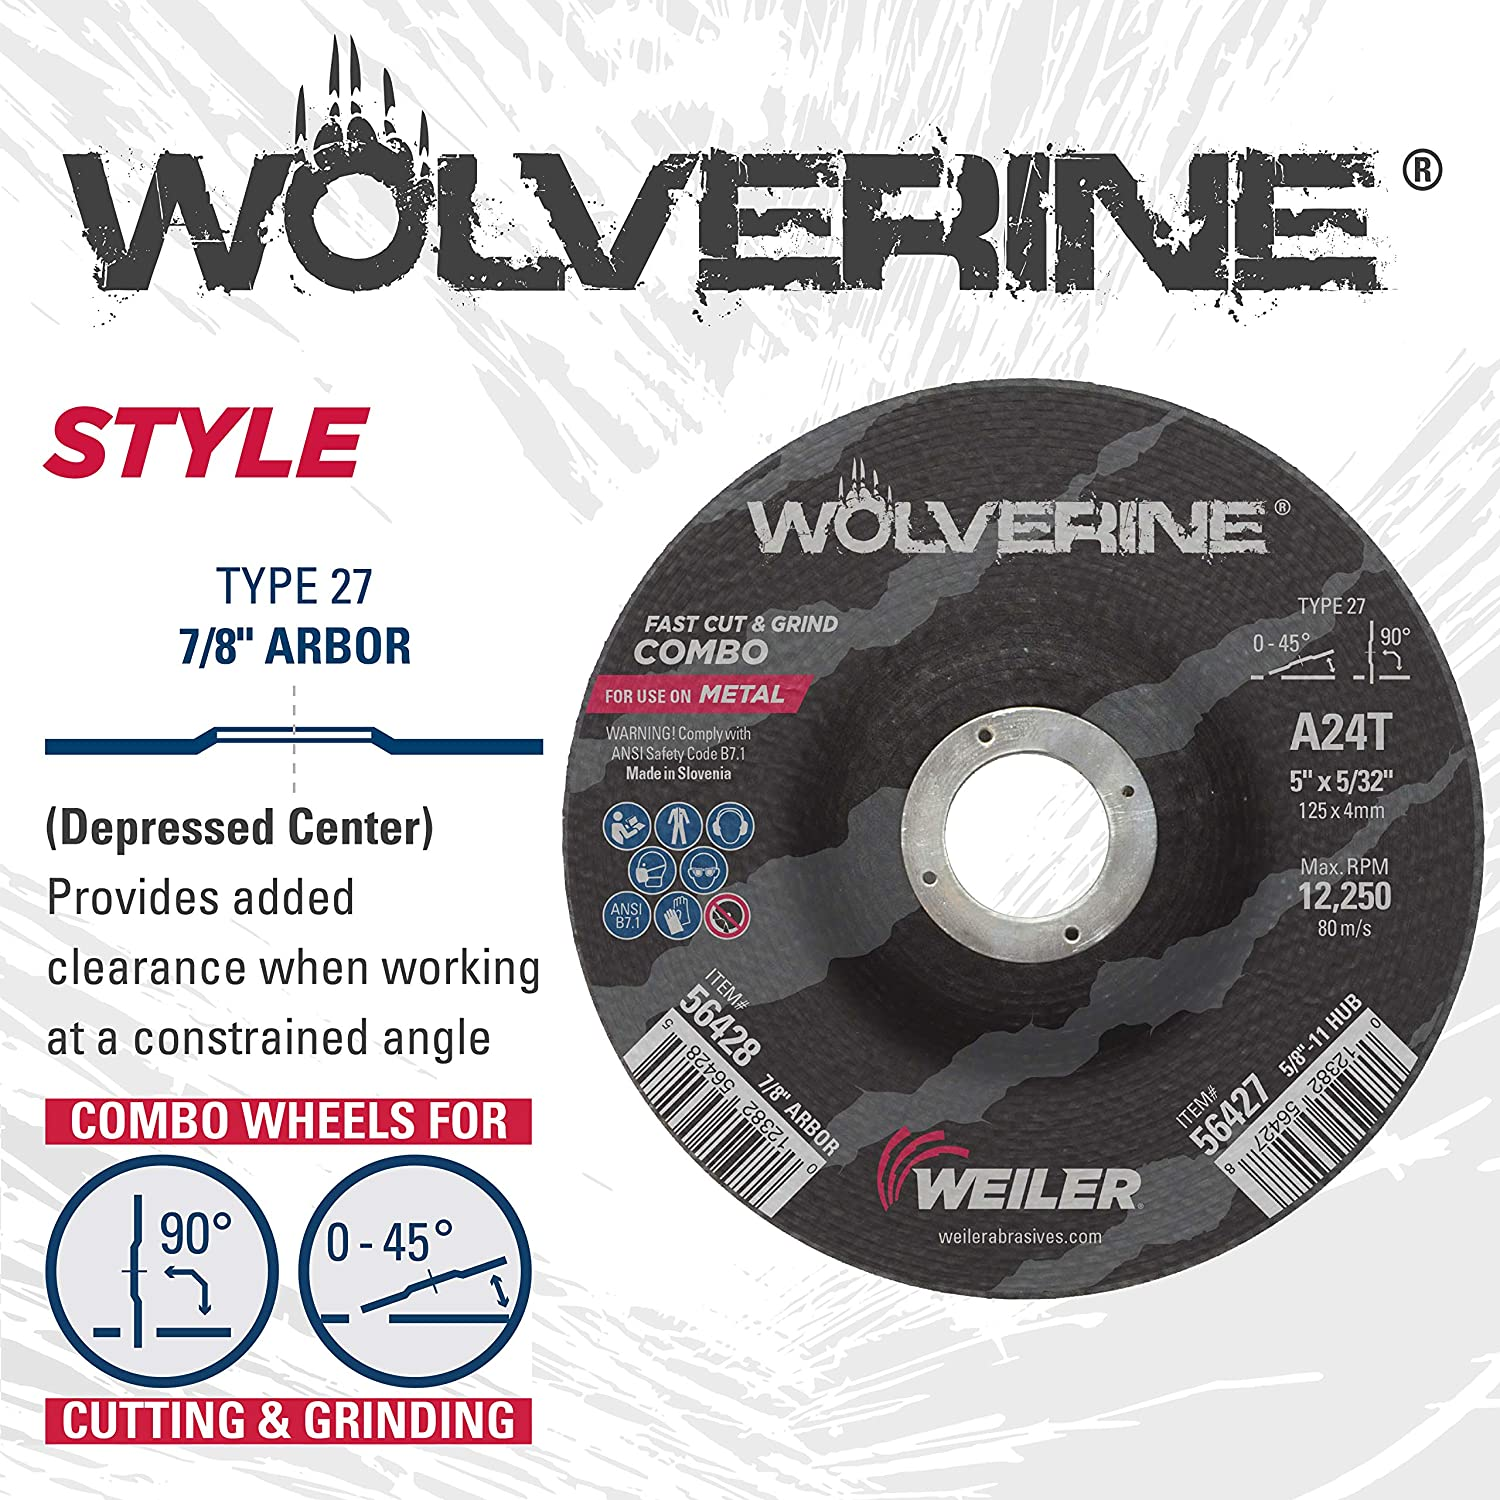 Pack of 25 A24T Weiler 56428 5 x 1//8 Wolverine Type 27 Cut and Grind Combo Wheel 7//8 A.H.